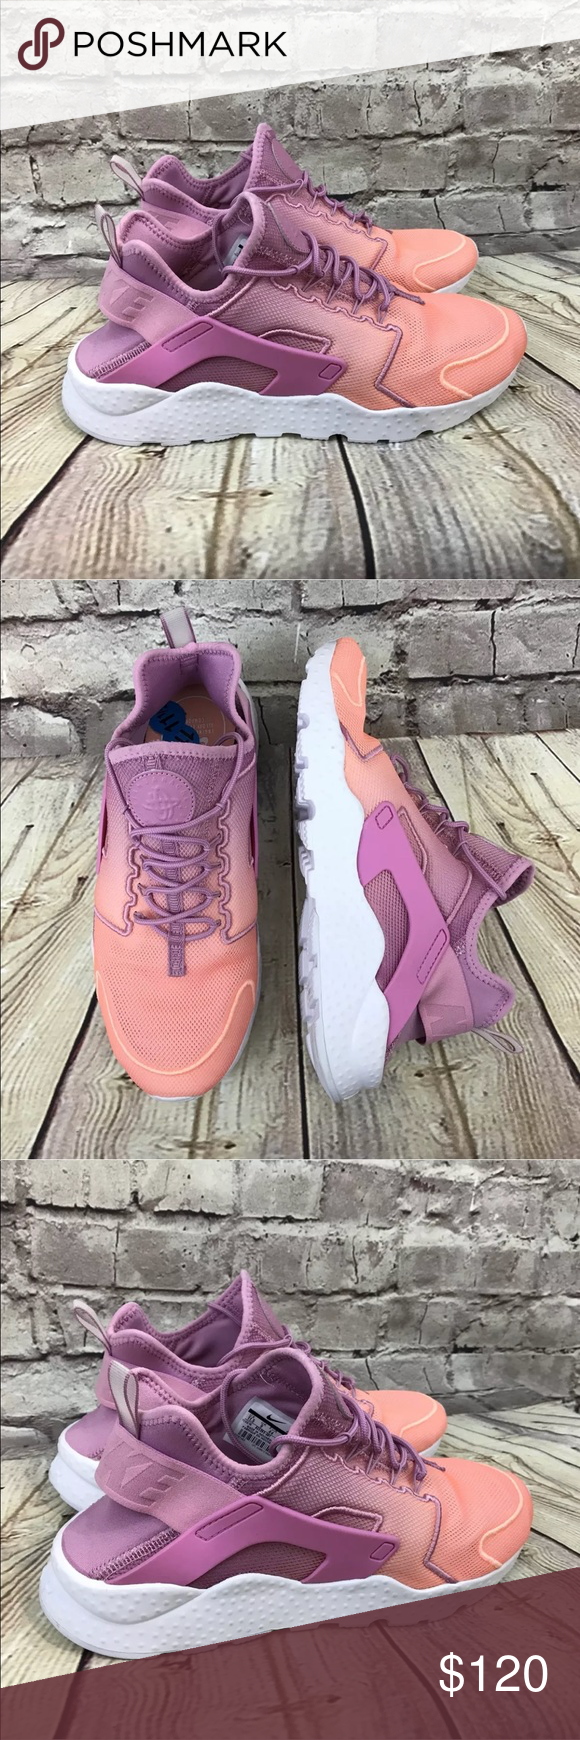 60669e960d88 Nike Huarache Run Ultra BR Orchid Sunset Glow You are purchasing a New pair  of